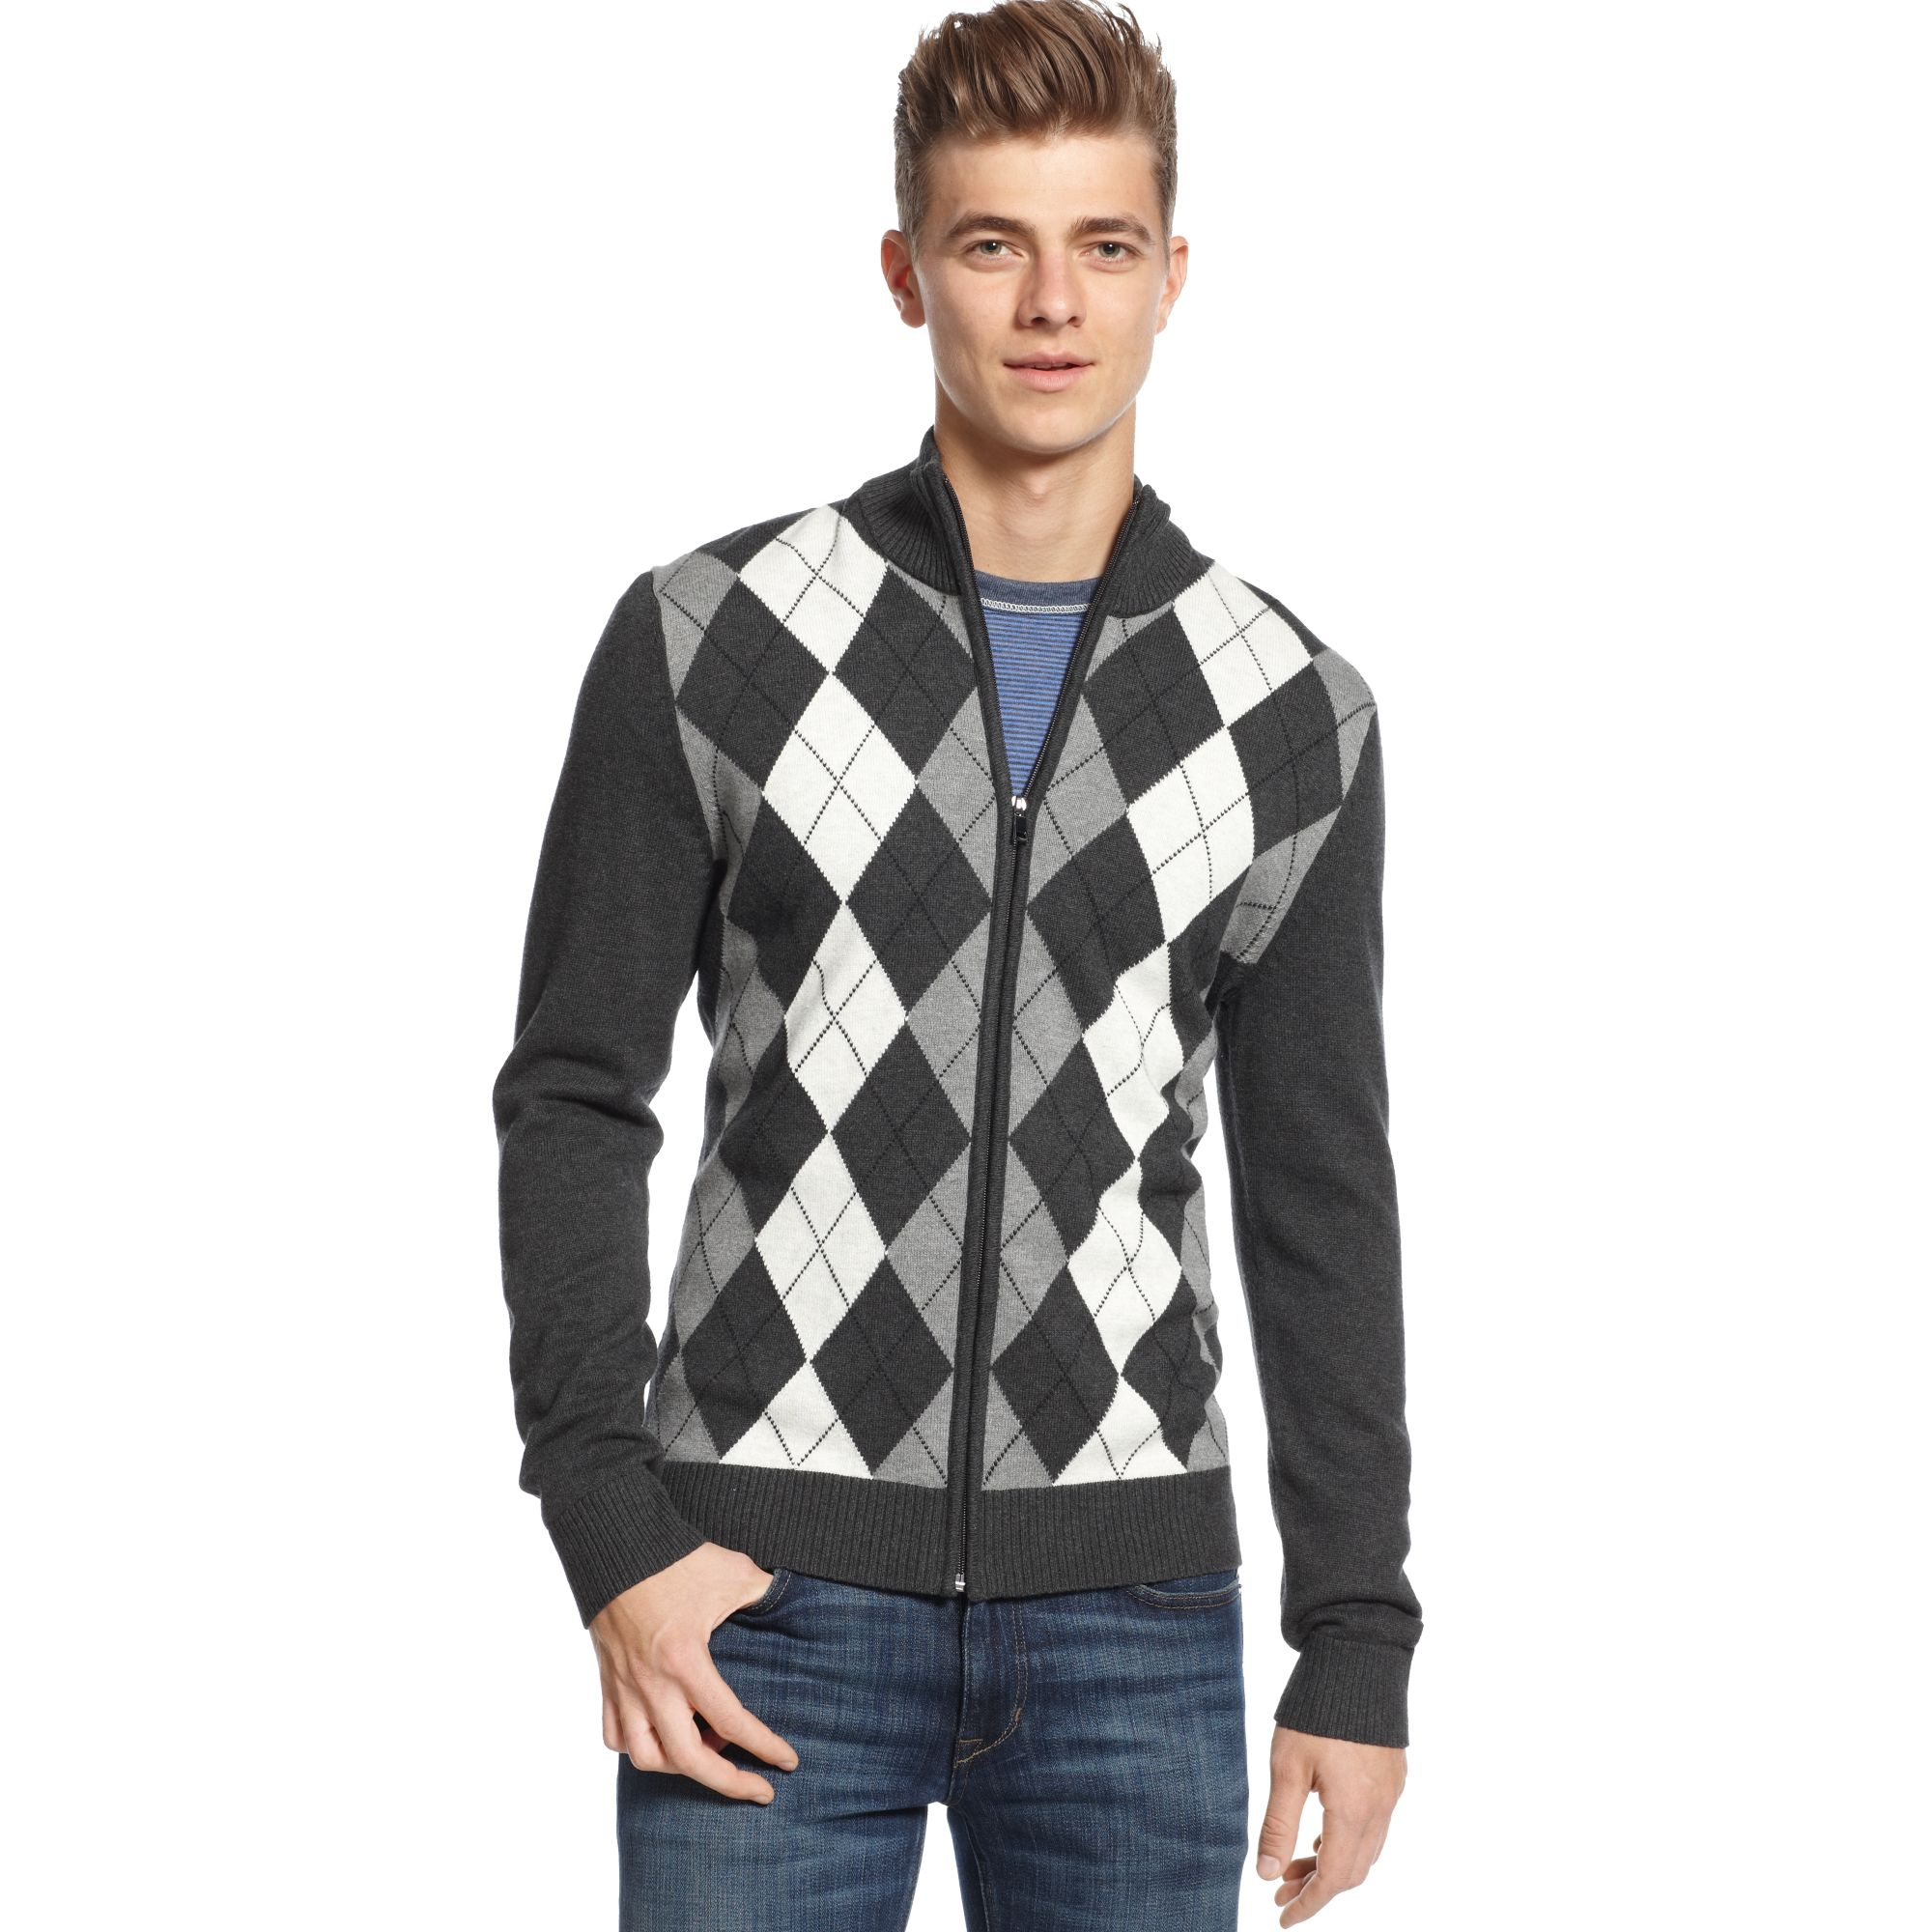 Find great deals on eBay for mens cashmere argyle sweater. Shop with confidence.